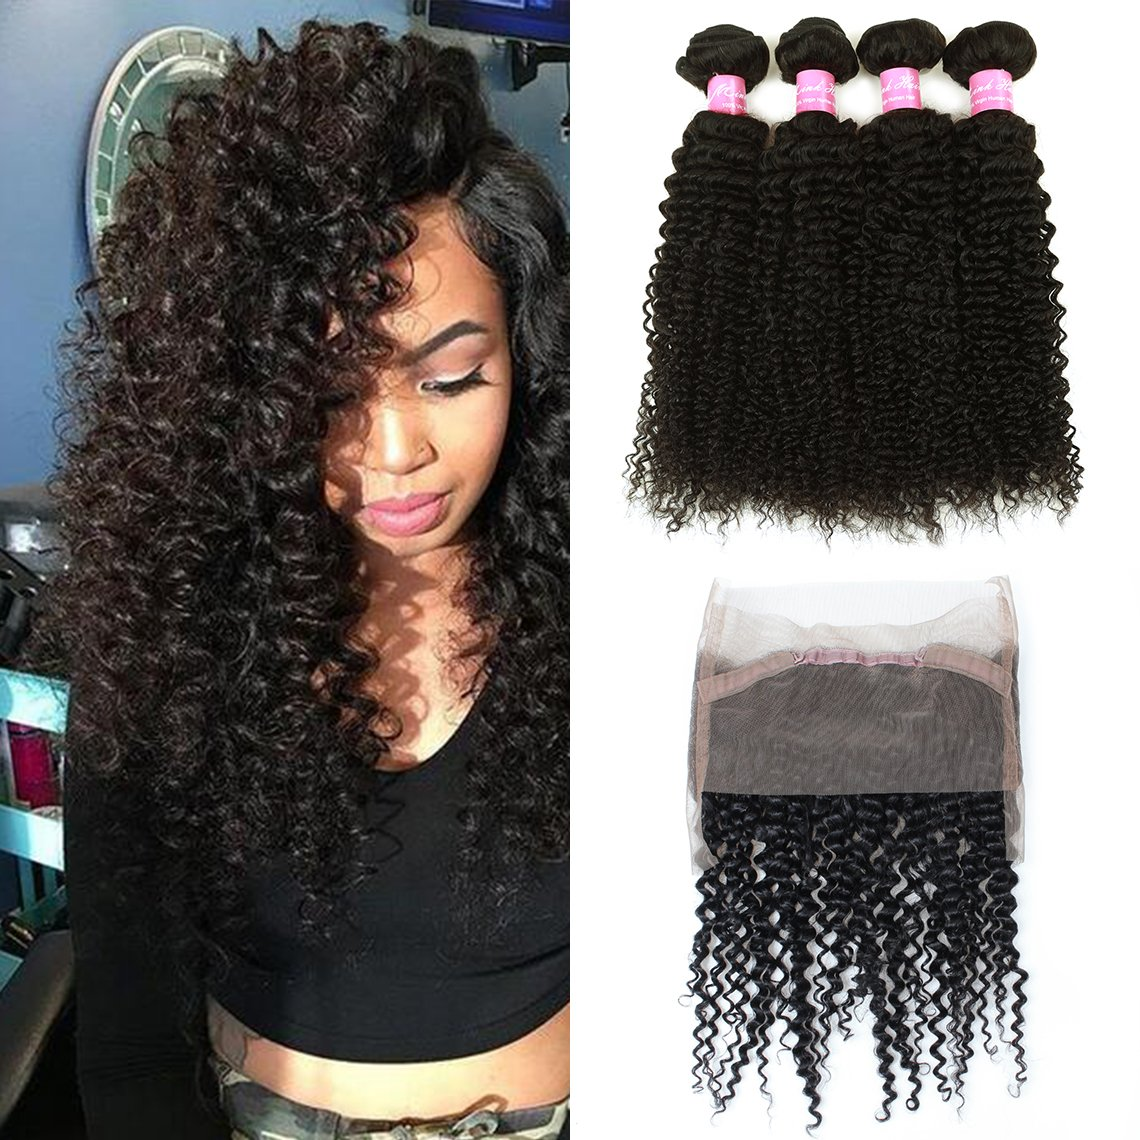 Mink Hair Brazilian Curly with 360 Frontal (16 18 20+14) 7A Grade Kinkys Curly Hair Bundles Virgin Human Hair Extensions with 360 Free Part Lace Frontal Closure Natural Color